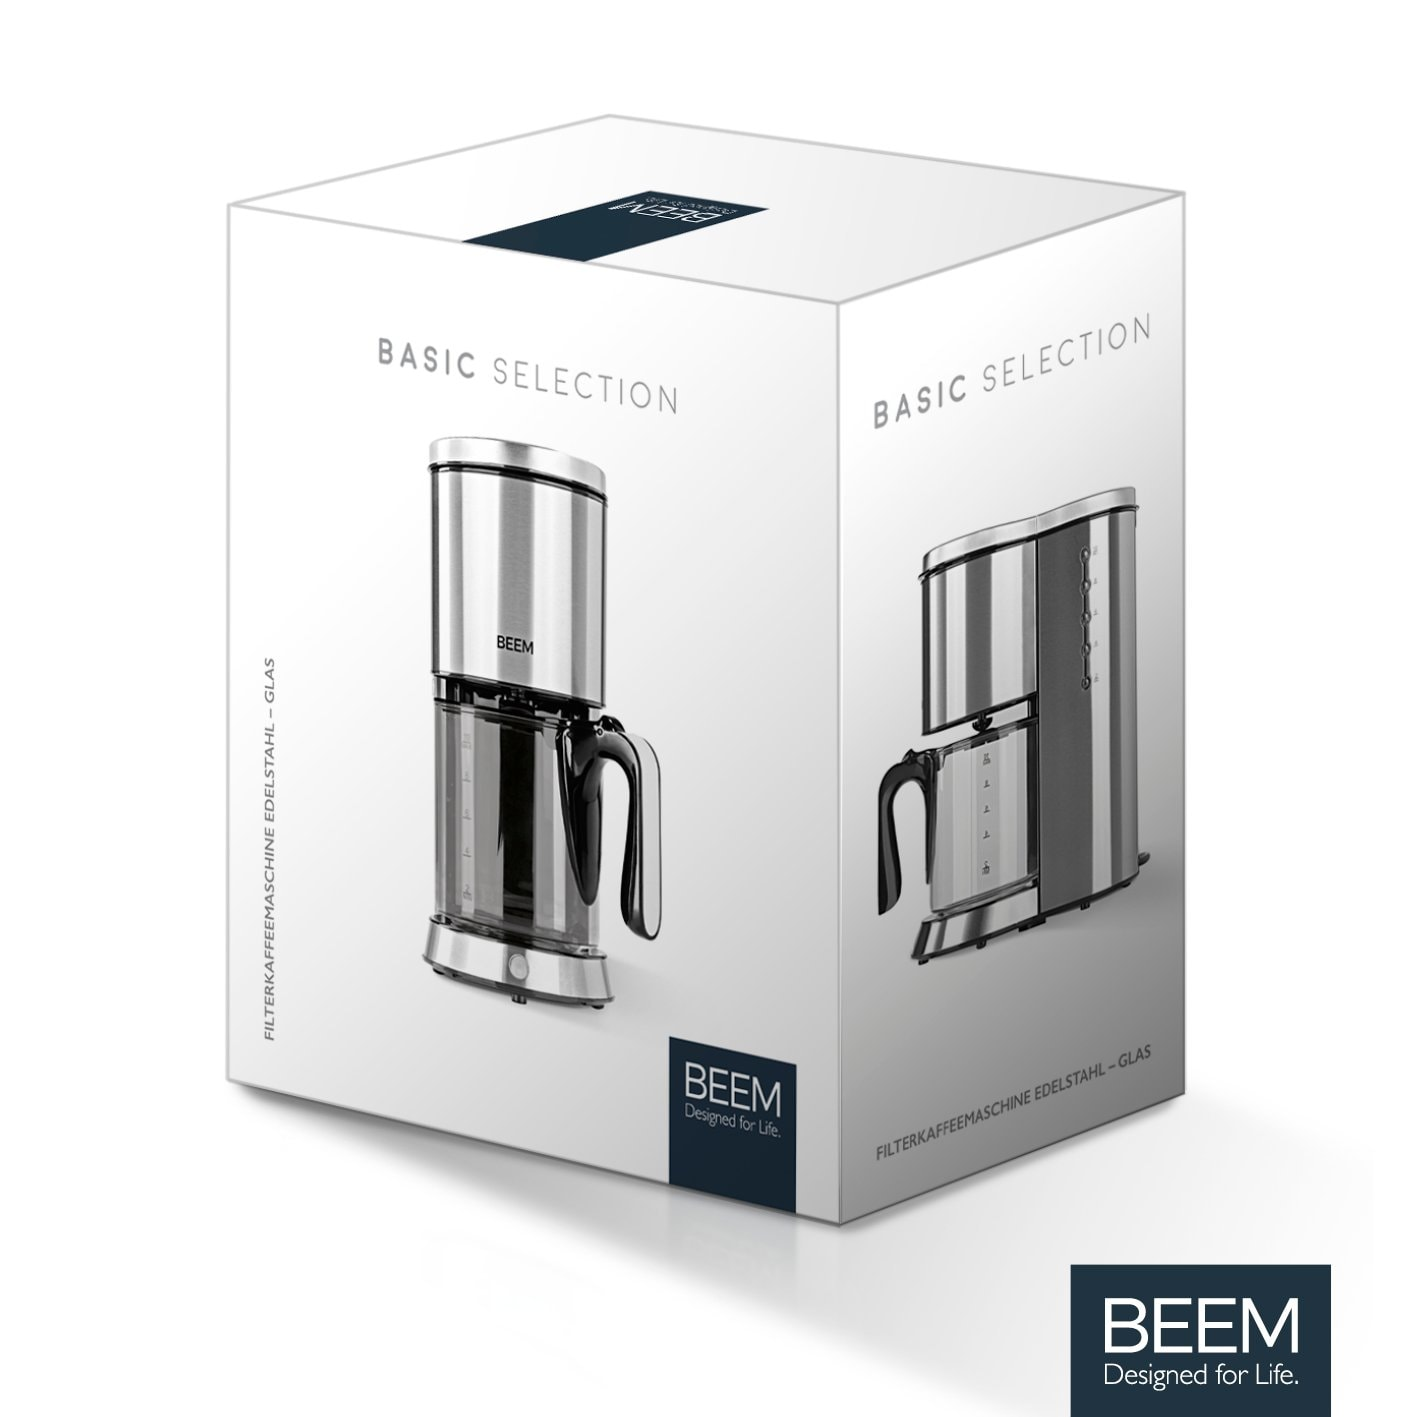 Beem Filterkaffeemaschine Edelstahl Glas Basic Collection